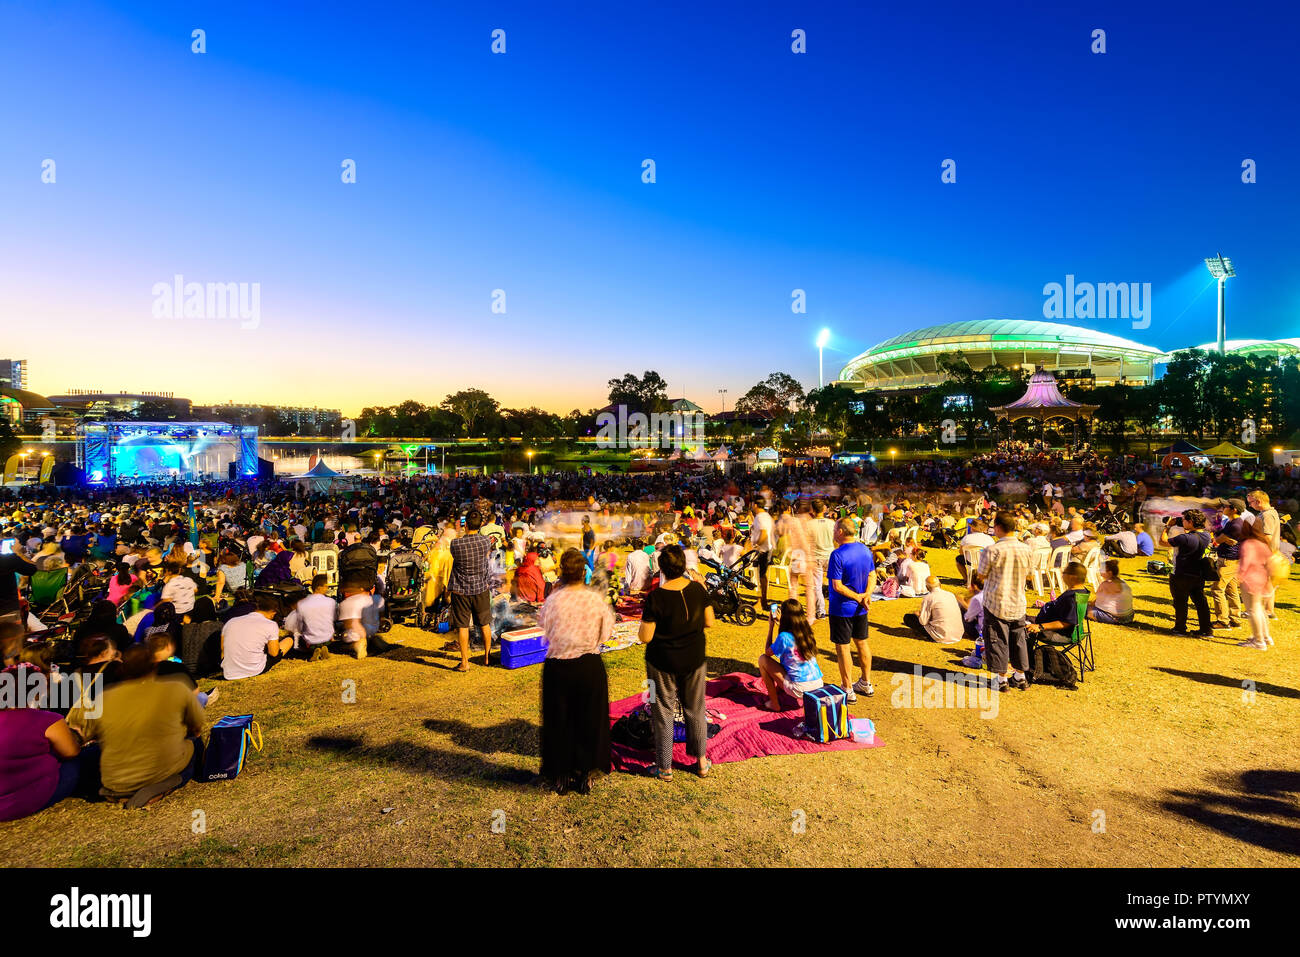 Adelaide, Australia - January 26, 2018: Adelaidians gathered together to celebrate Australia Day in the city in Elder Park. This event is attended by  Stock Photo